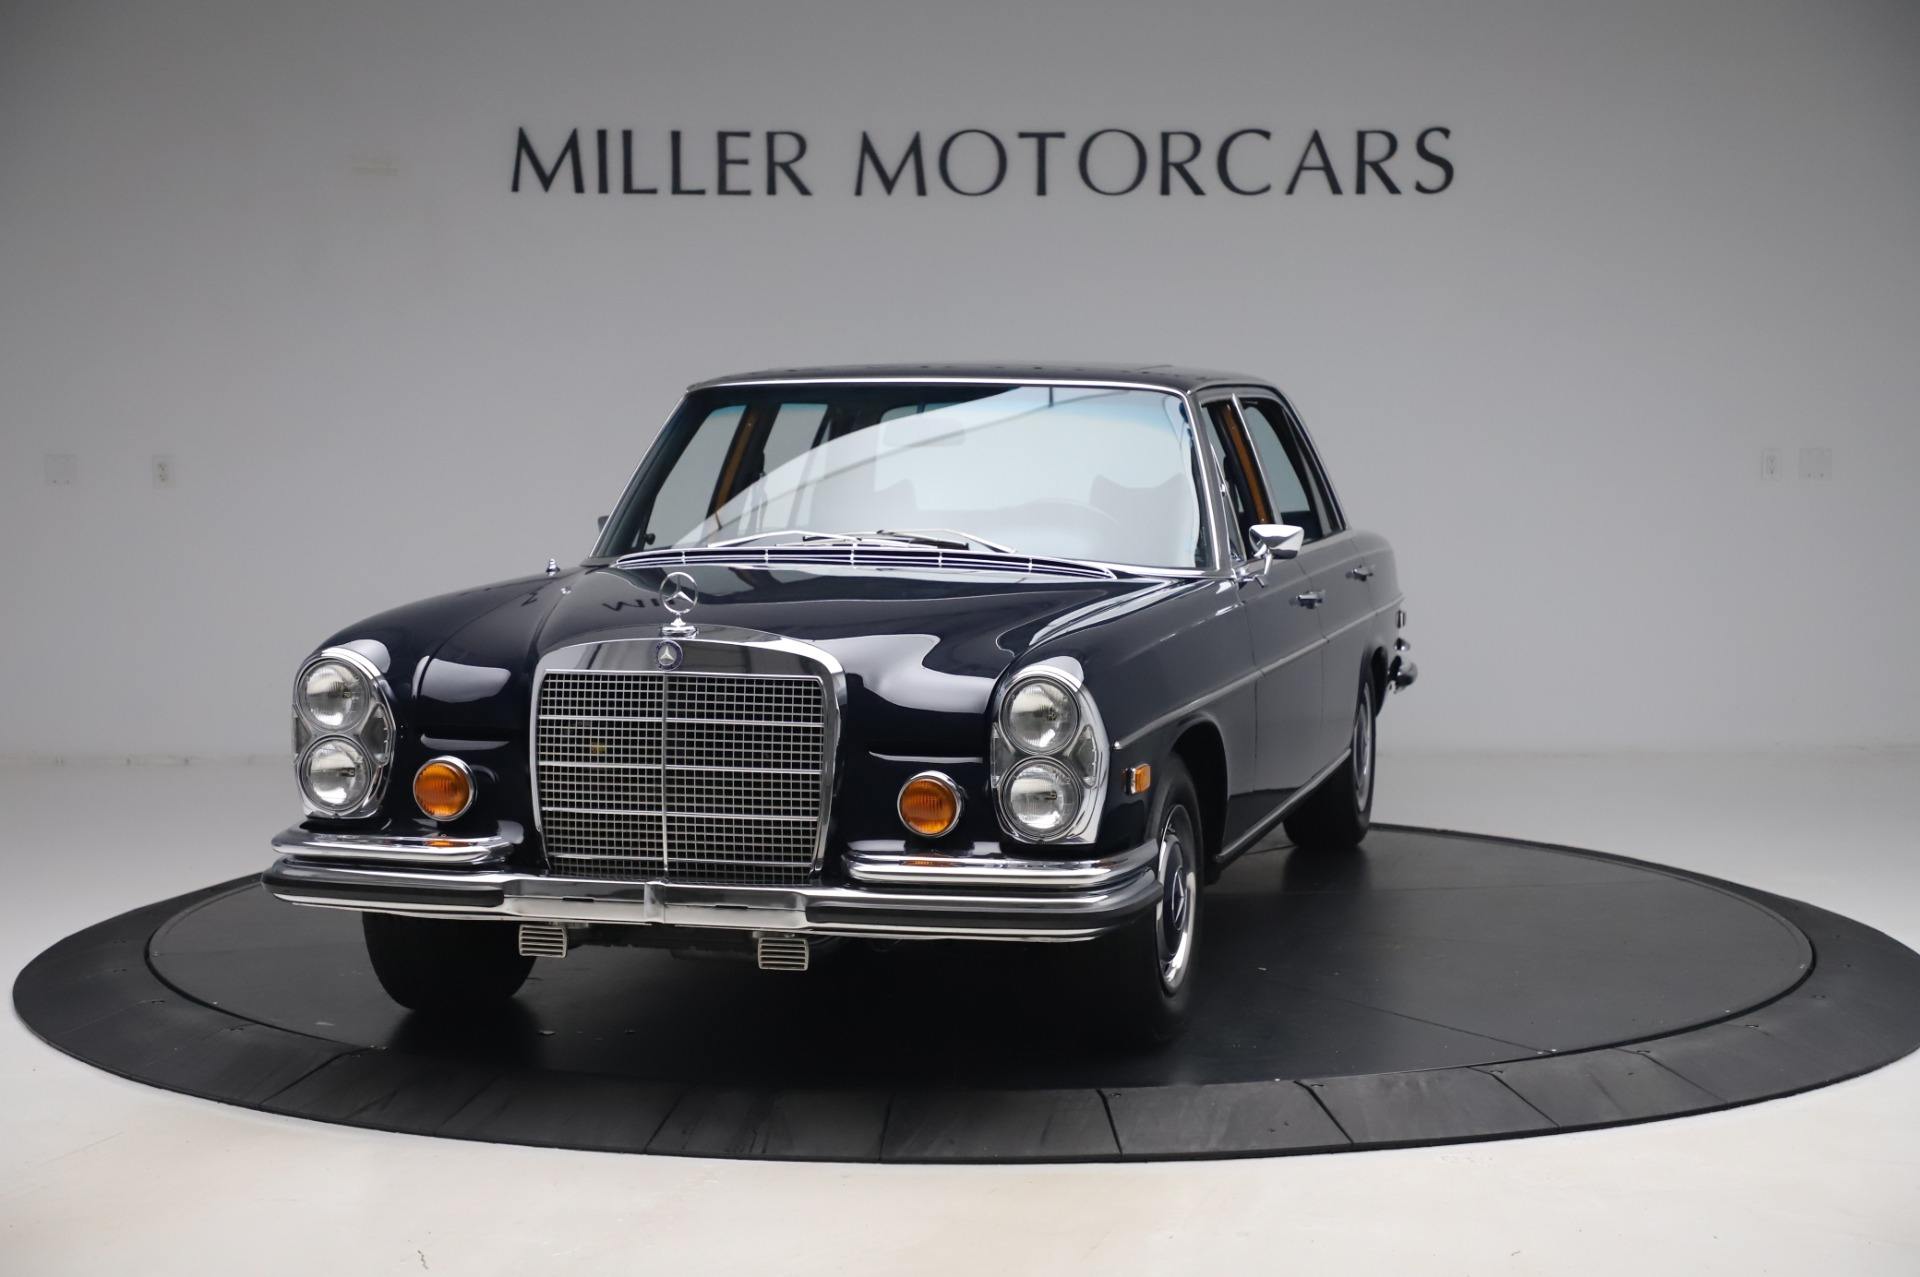 Used 1971 Mercedes-Benz 300 SEL 6.3 for sale $117,000 at Maserati of Greenwich in Greenwich CT 06830 1